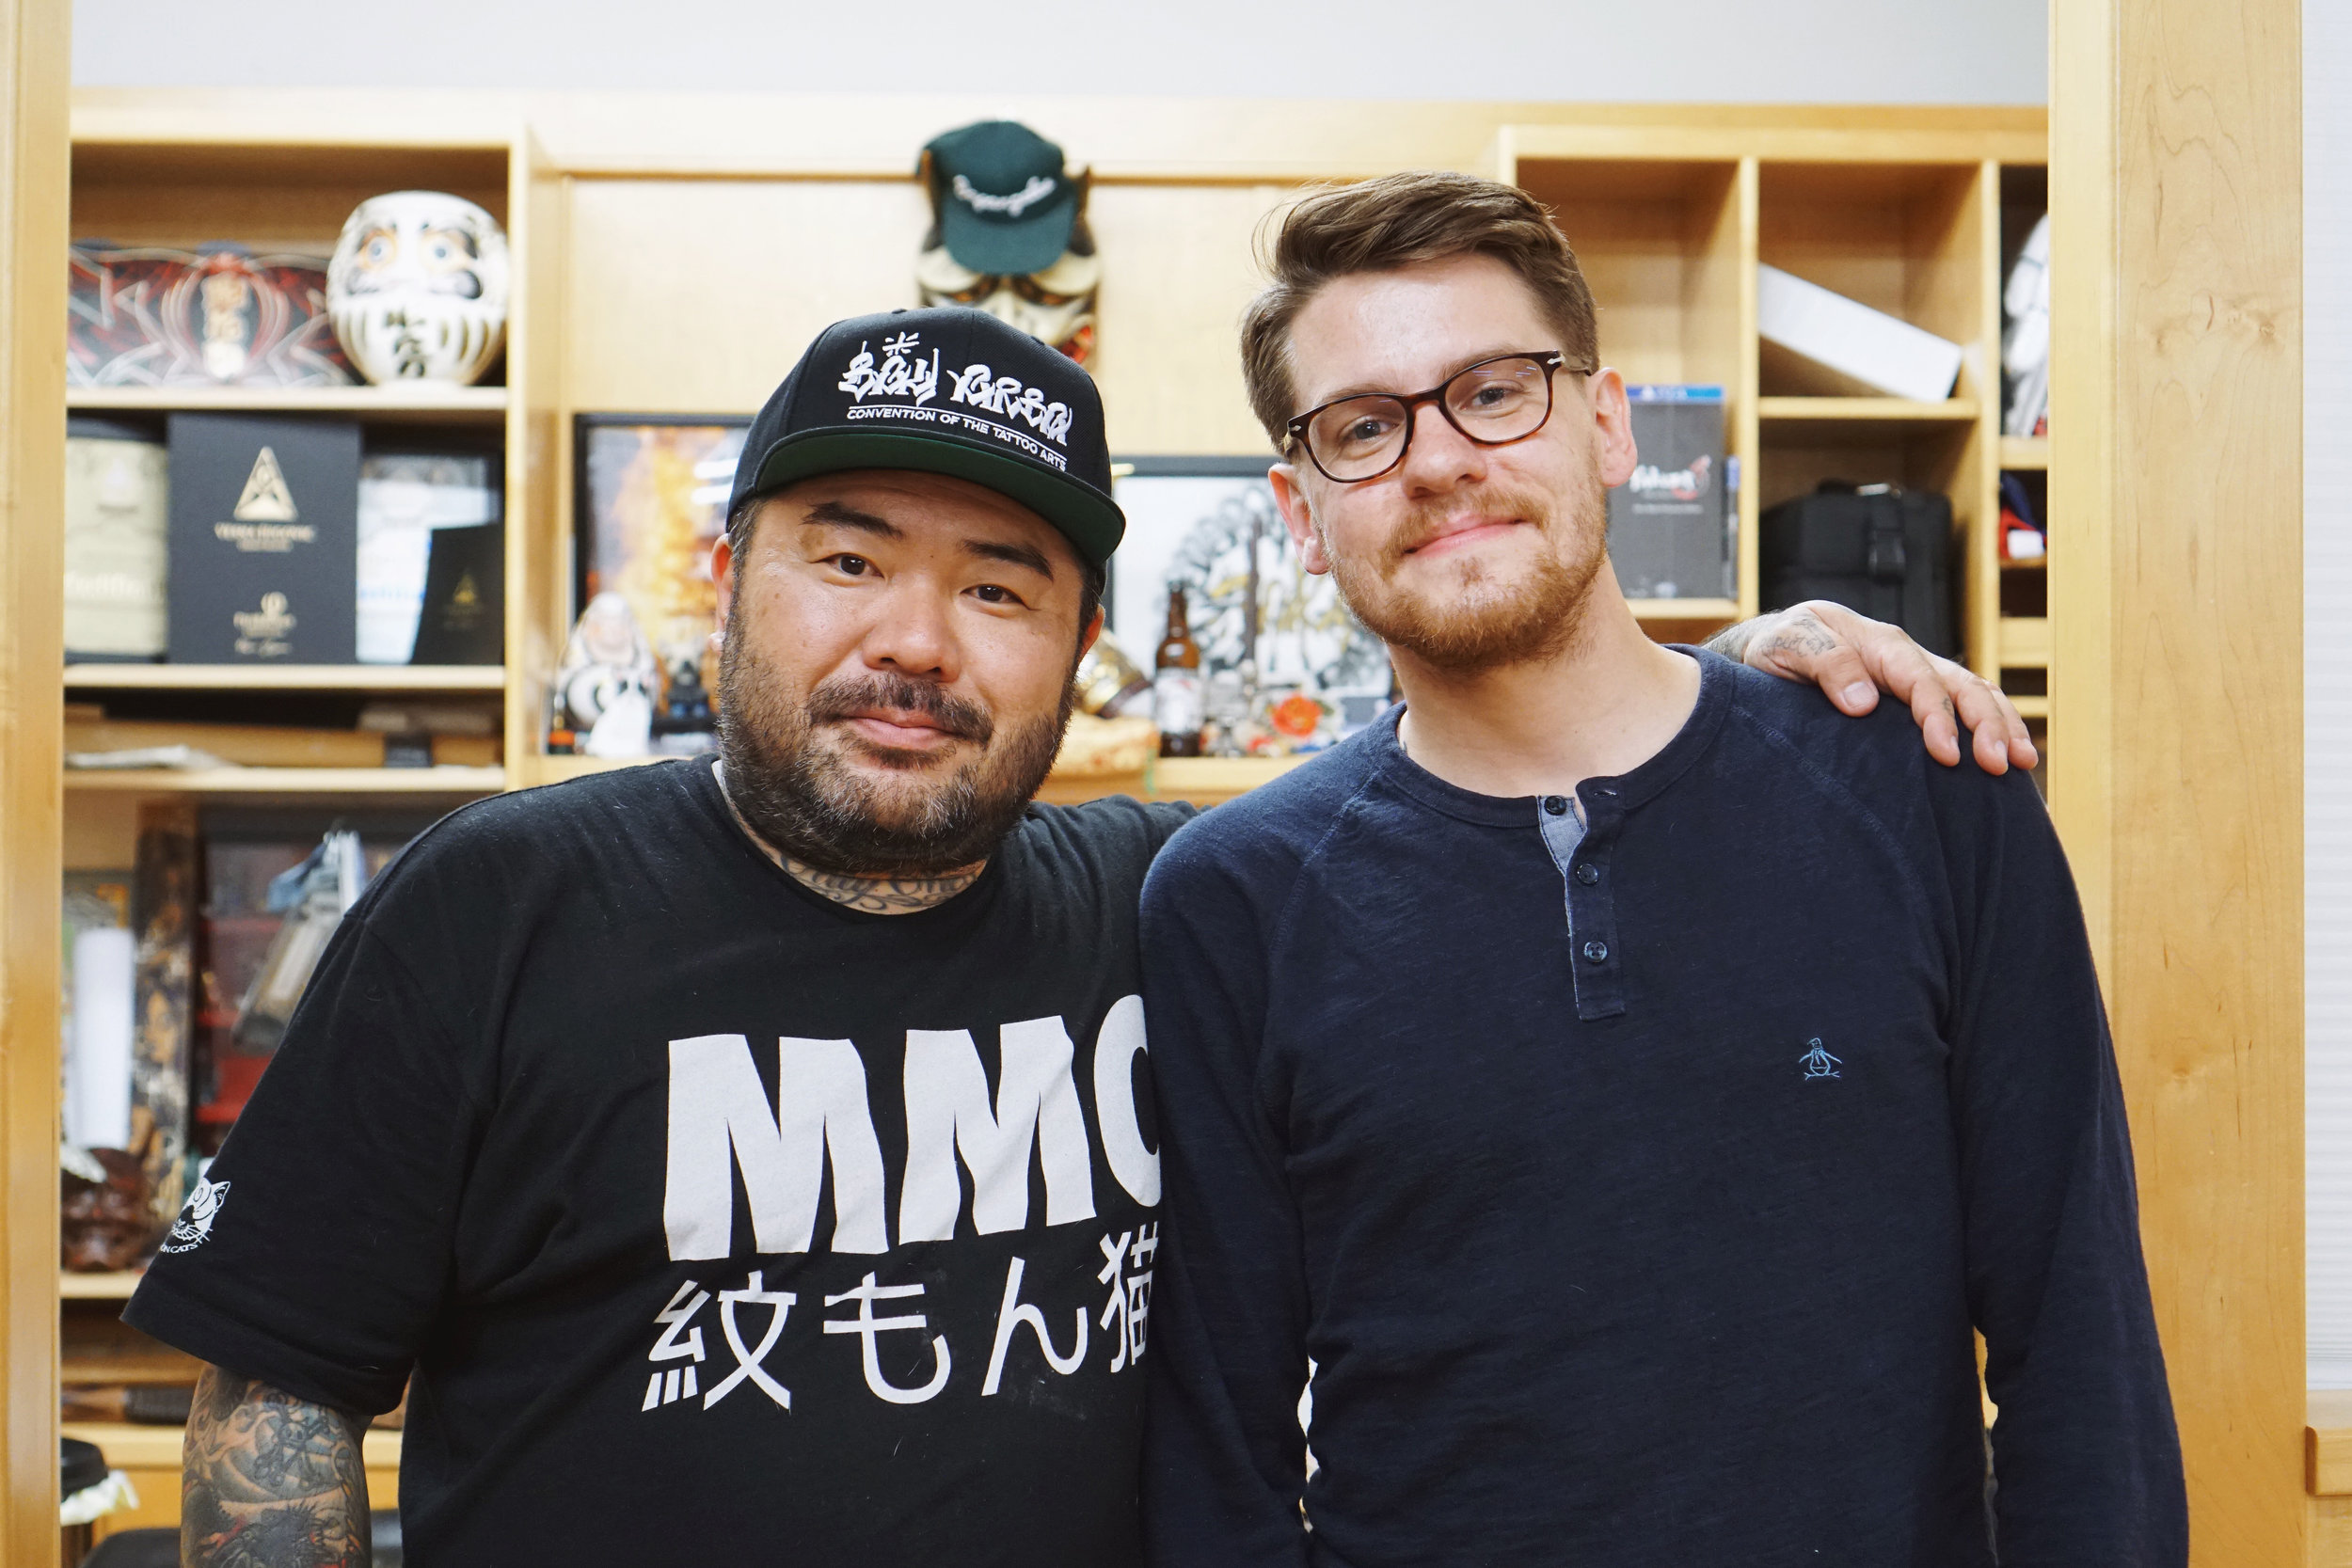 EP 005 - Tattoo artist Taki Kitamura (@stateofgracetaki) discusses how he organizes a tattoo convention that features the highest caliber of work, being surrounded by inspiration at State of Grace, and how he looks toward the future of tattooing while still increasingly embracing traditions of the past.SPONSORS:Lucky SupplyRiver Valley Printing Co